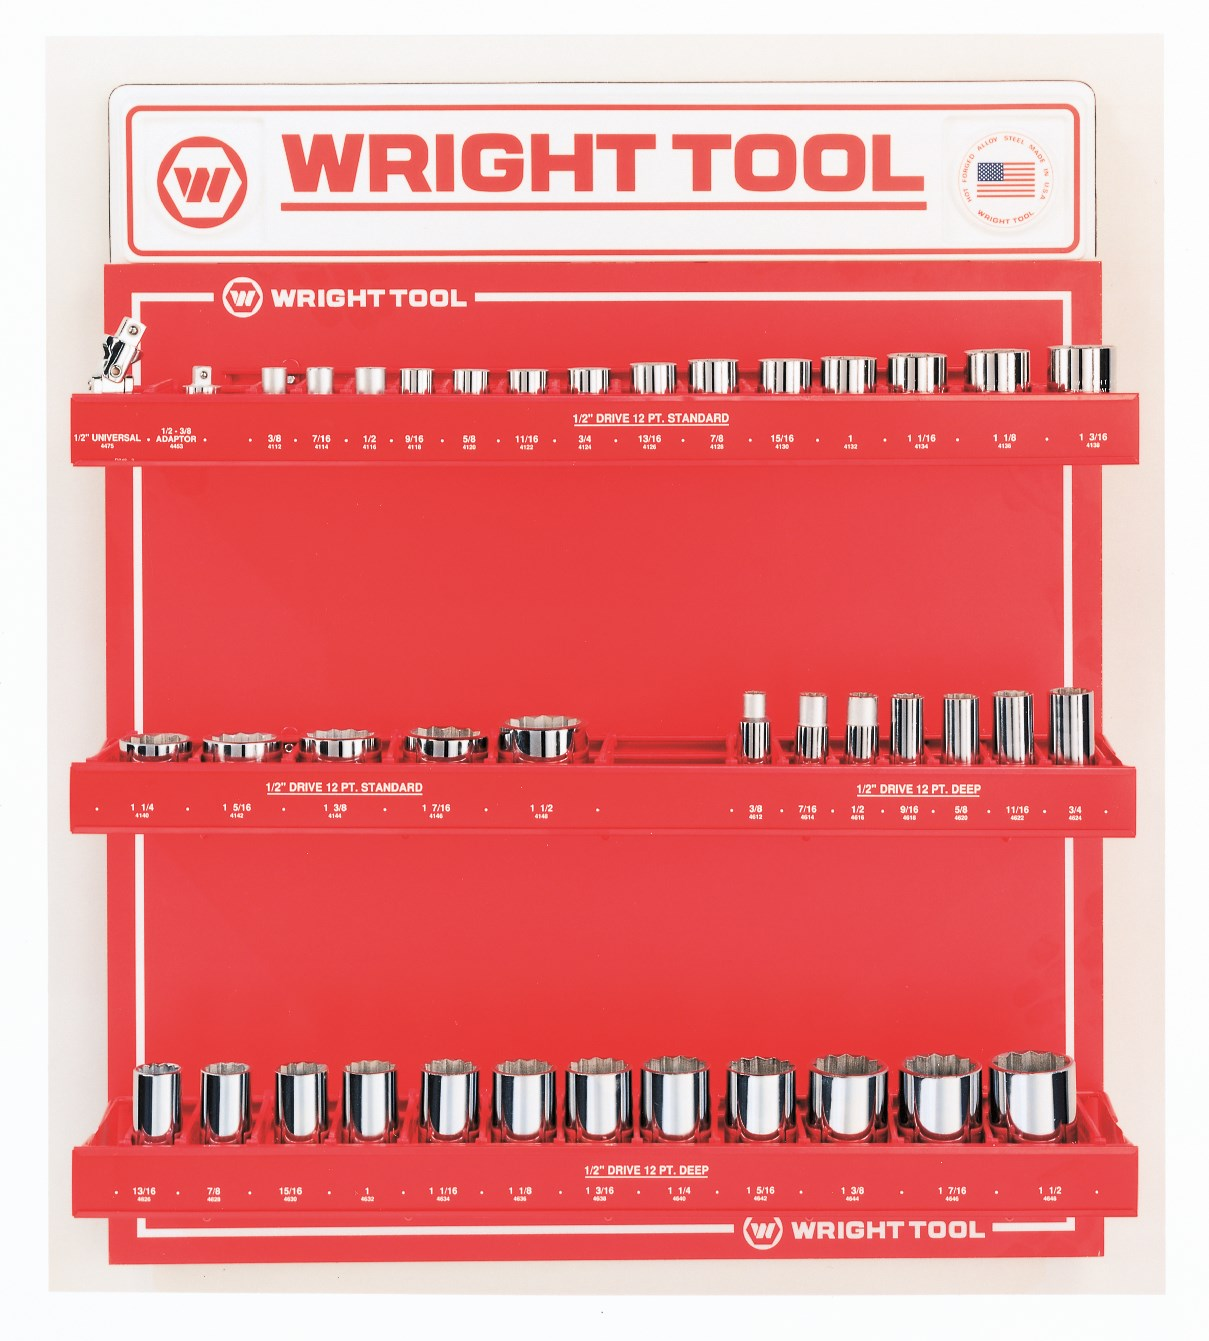 Wright Tool D984 91 Piece 3/8-inch Drive 6 & 12-Point Sockets